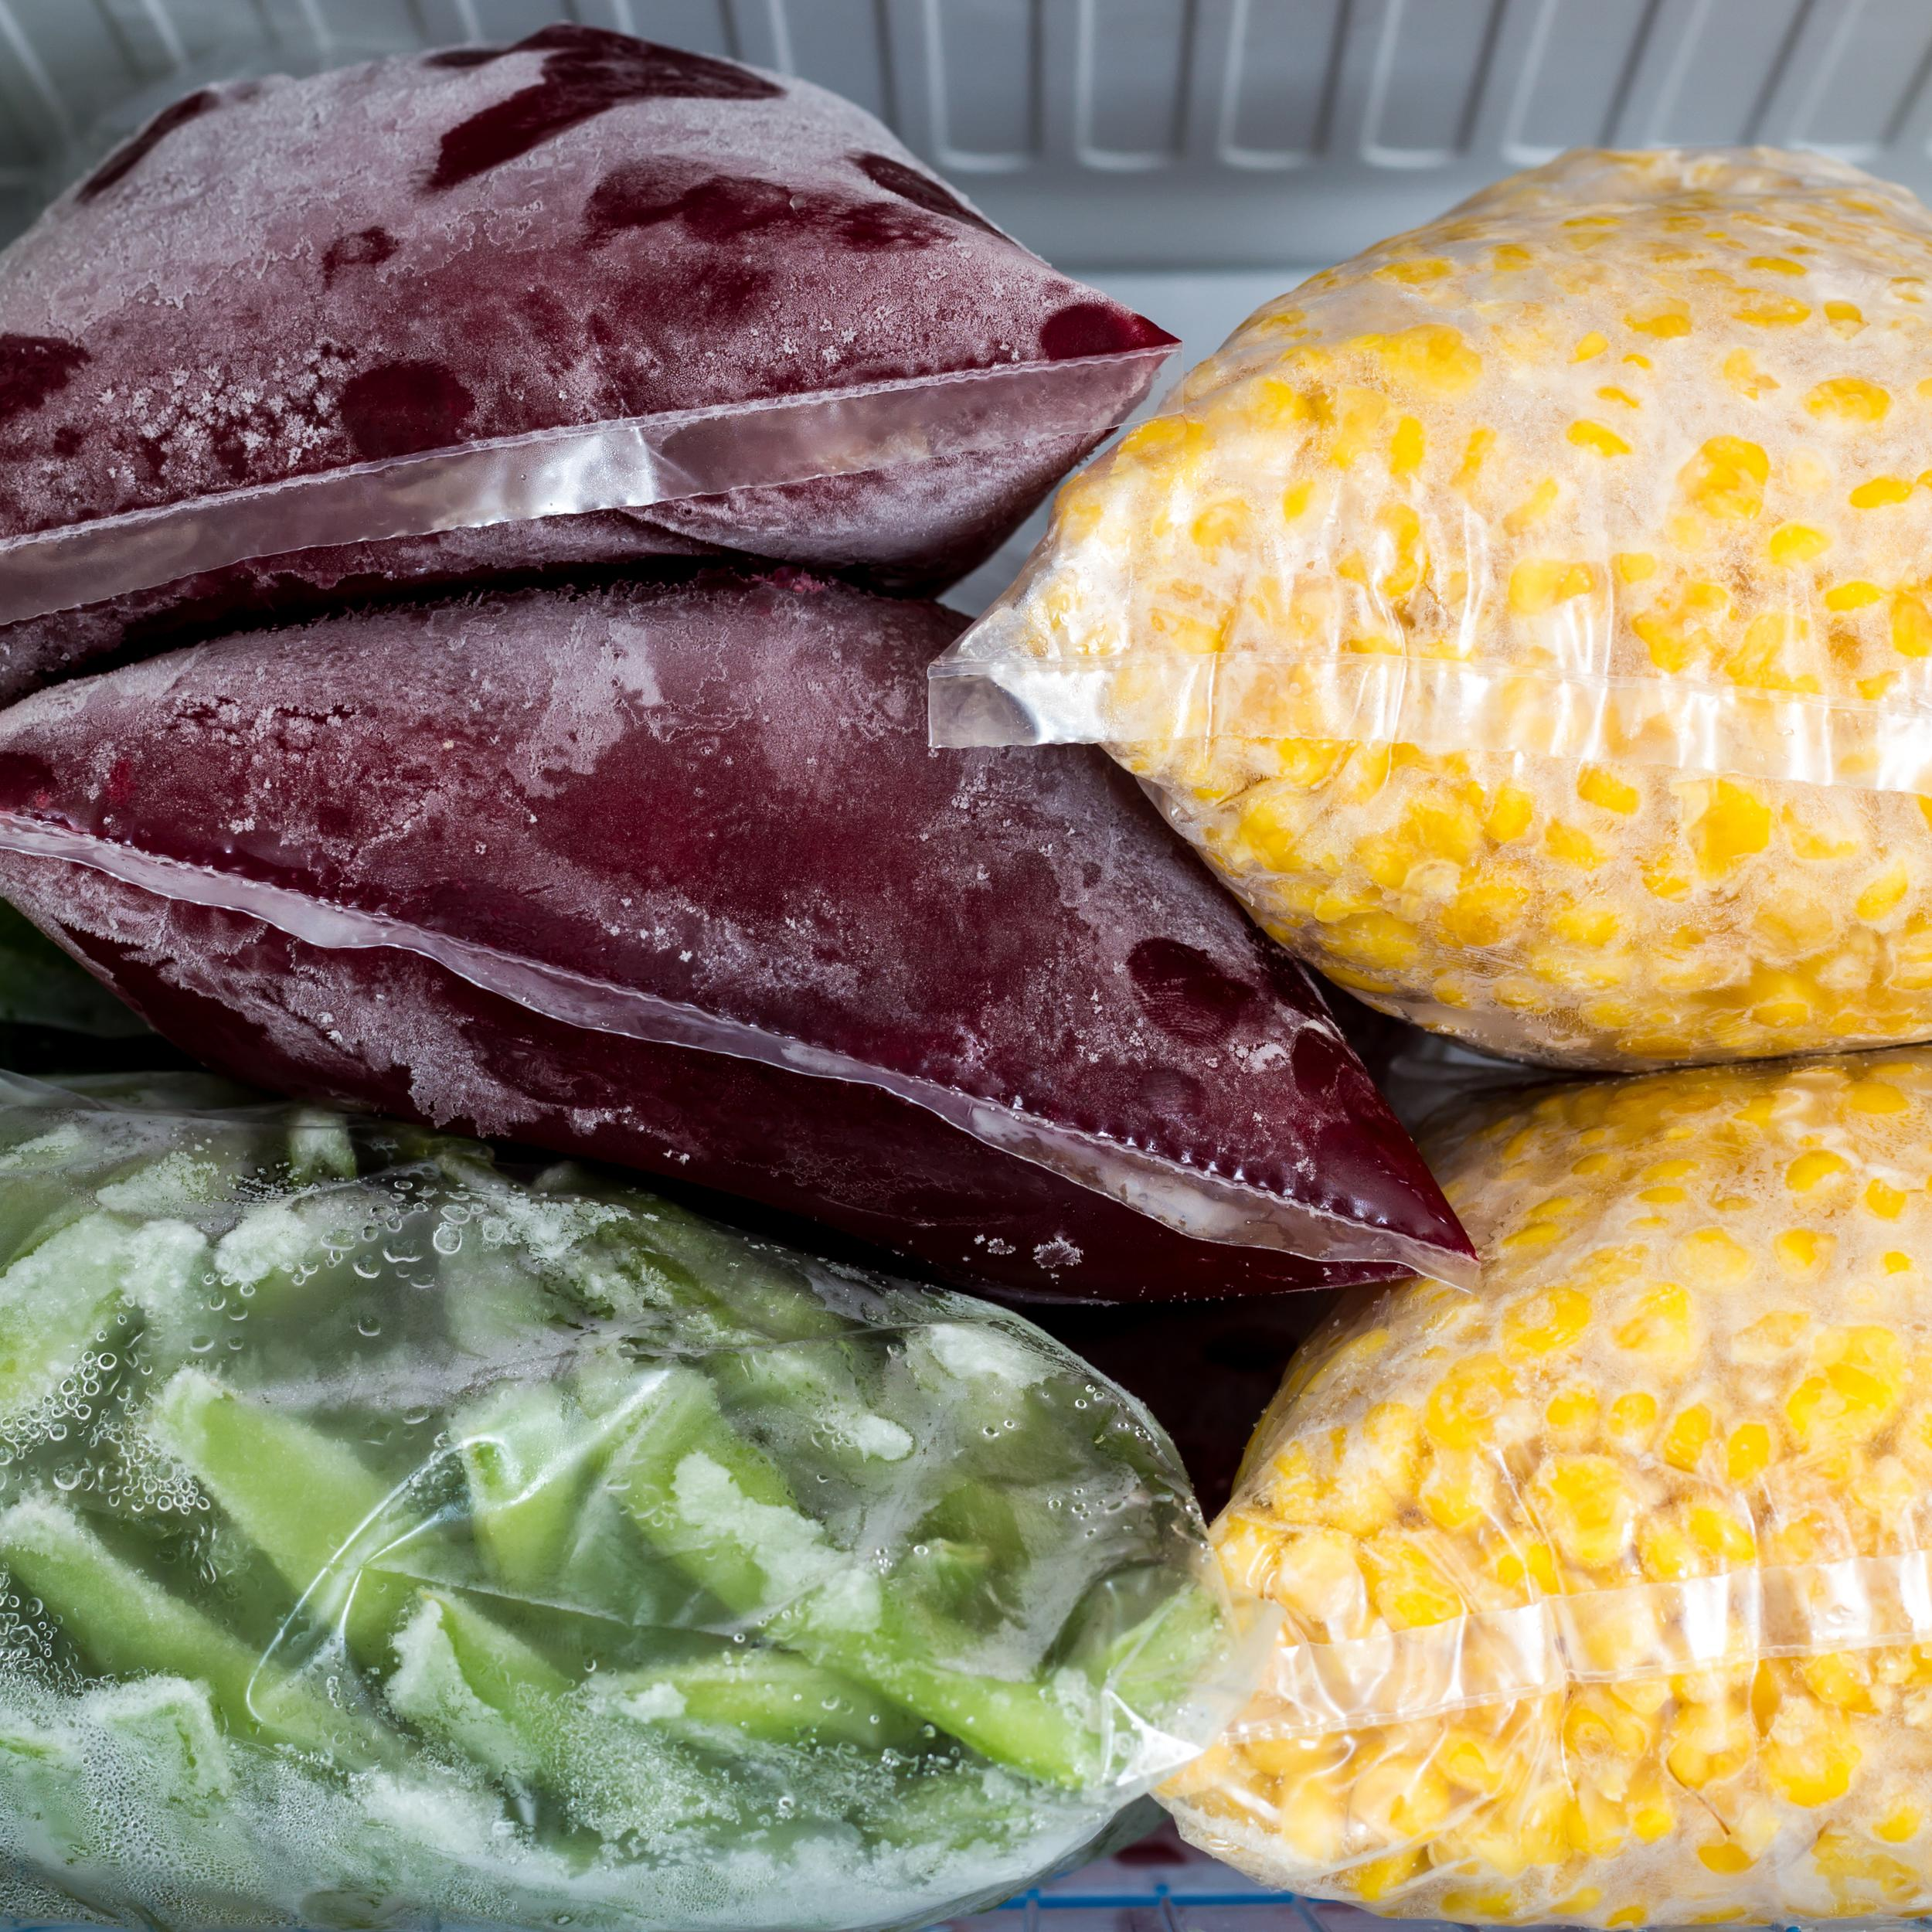 <p>Get to know the rules around freezing 'yellow sticker' items, so you can buy when they are cheapest and use over the following weeks and months.</p>  <p>Don't assume something is perishable without checking. Everything from cheese to beansprouts is fine to freeze as long as you treat them correctly (beansprouts need blanching, chilling in ice water, and freezing immediately).</p>